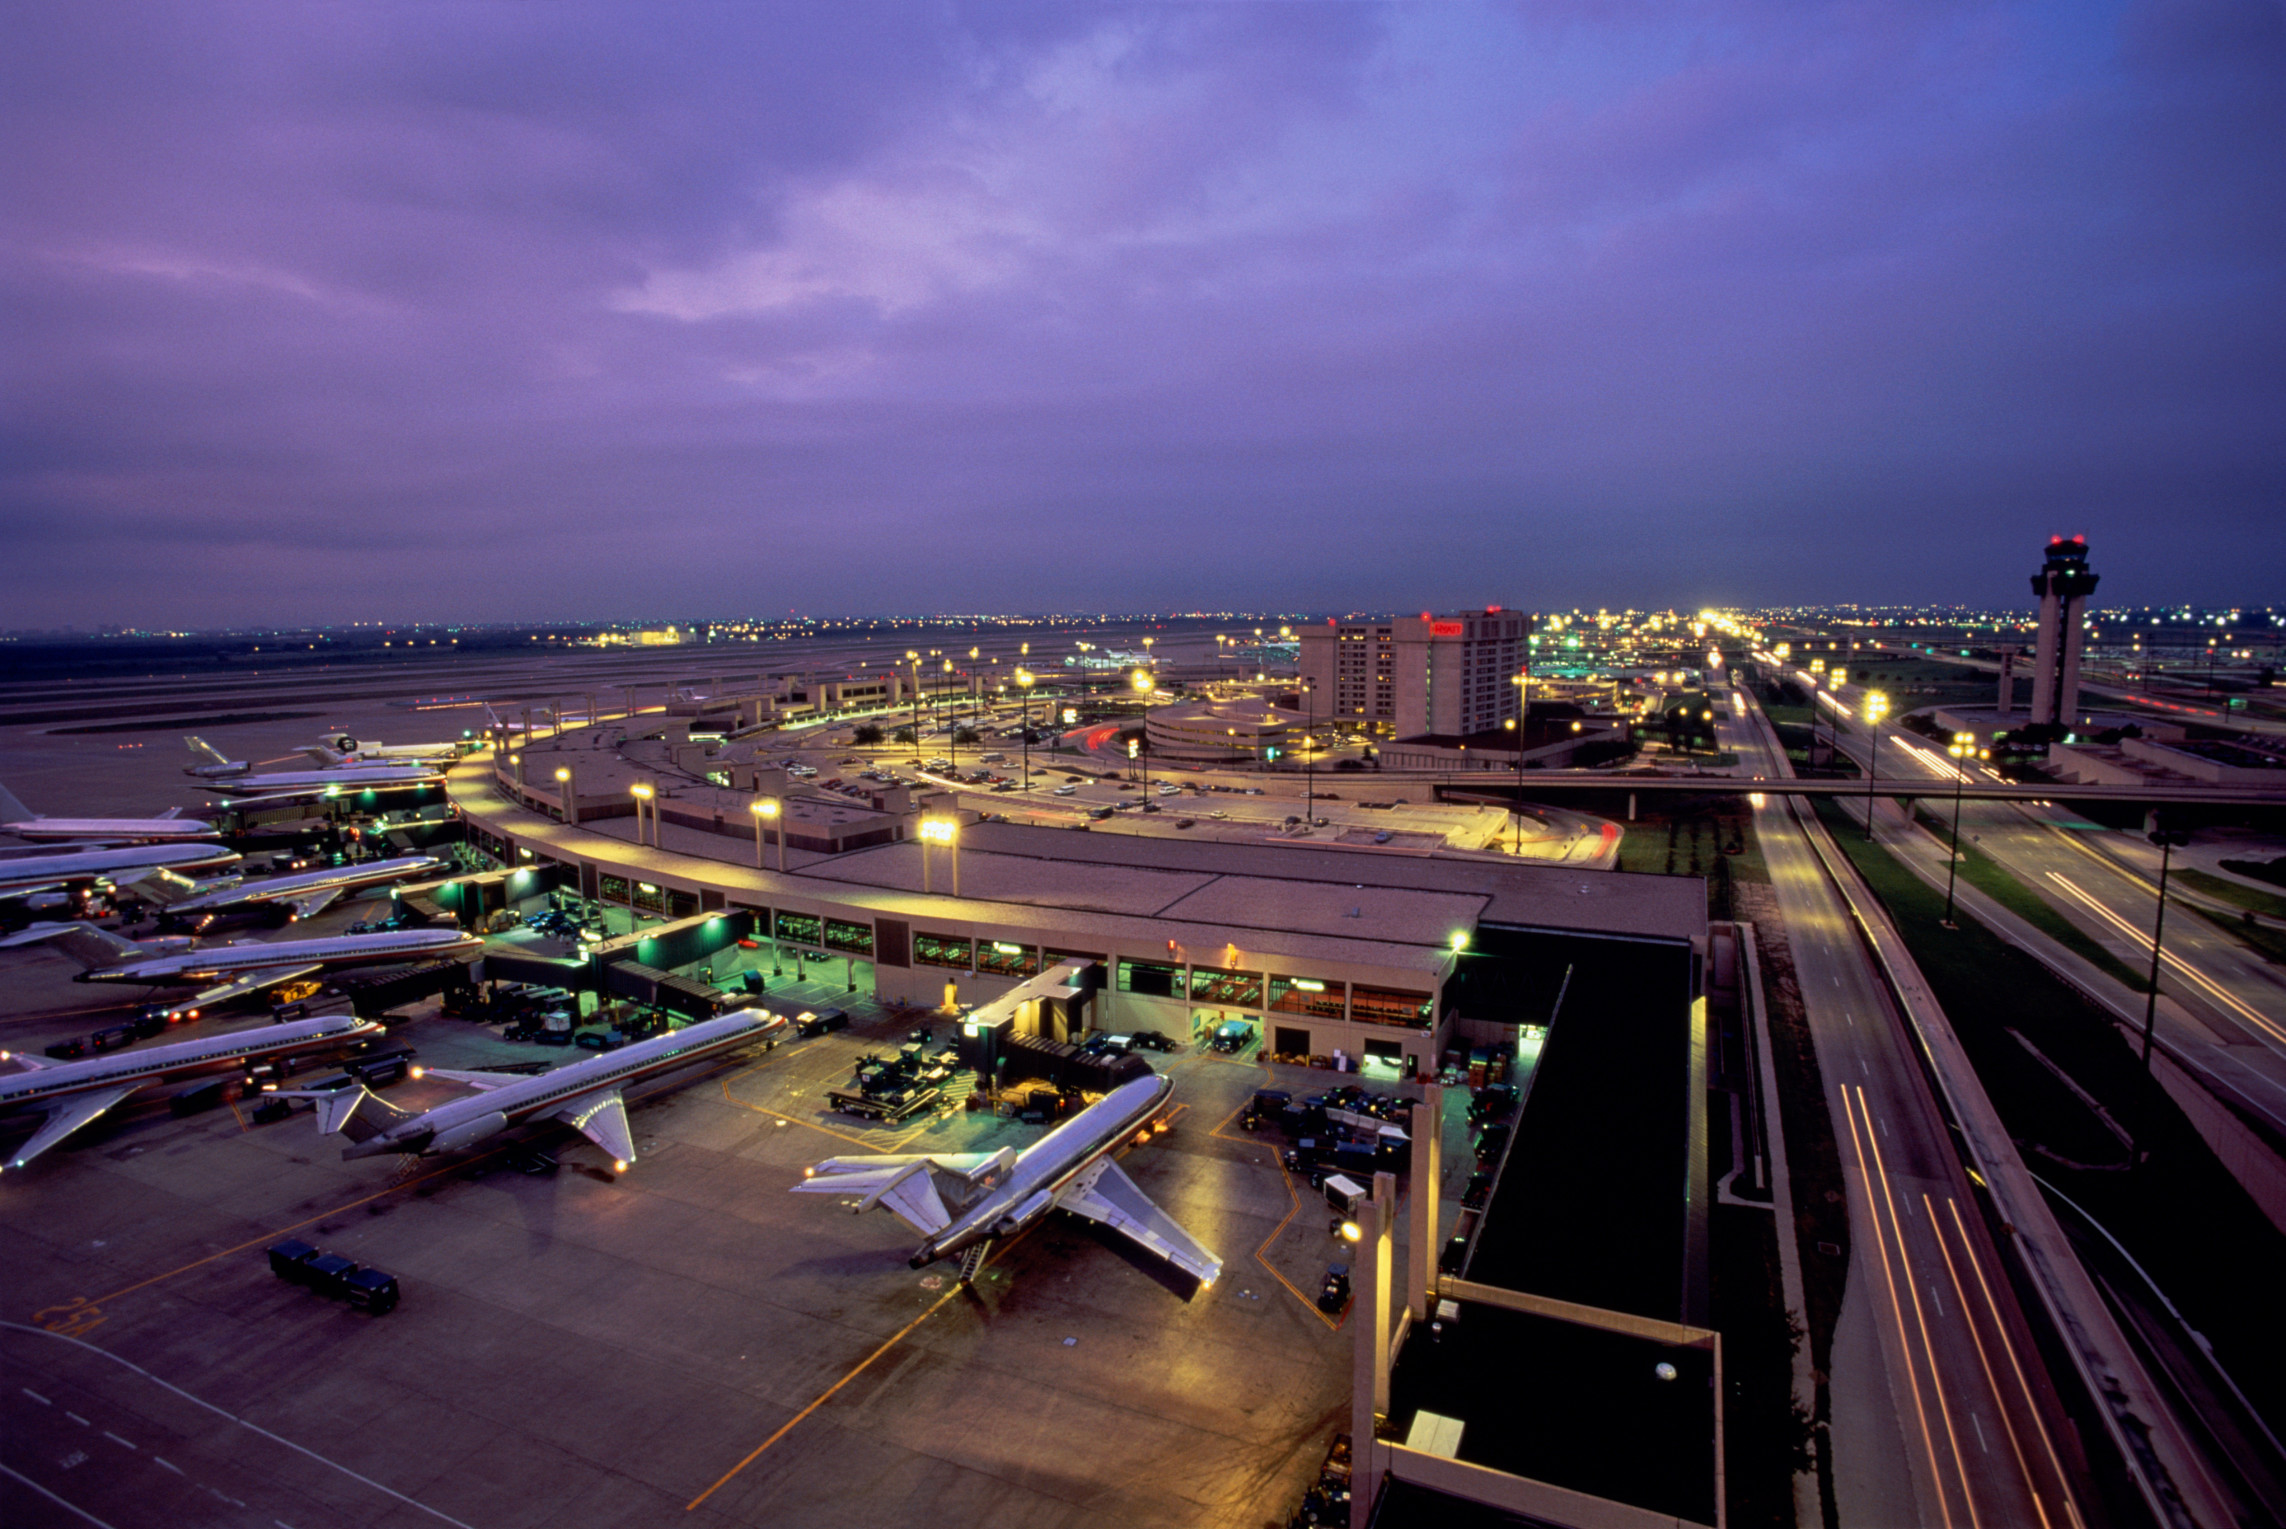 A massive airport terminal at dusk is seen from above, with dozens of jets parked at gates illuminated with an array of glowing lights against a darkening sky.